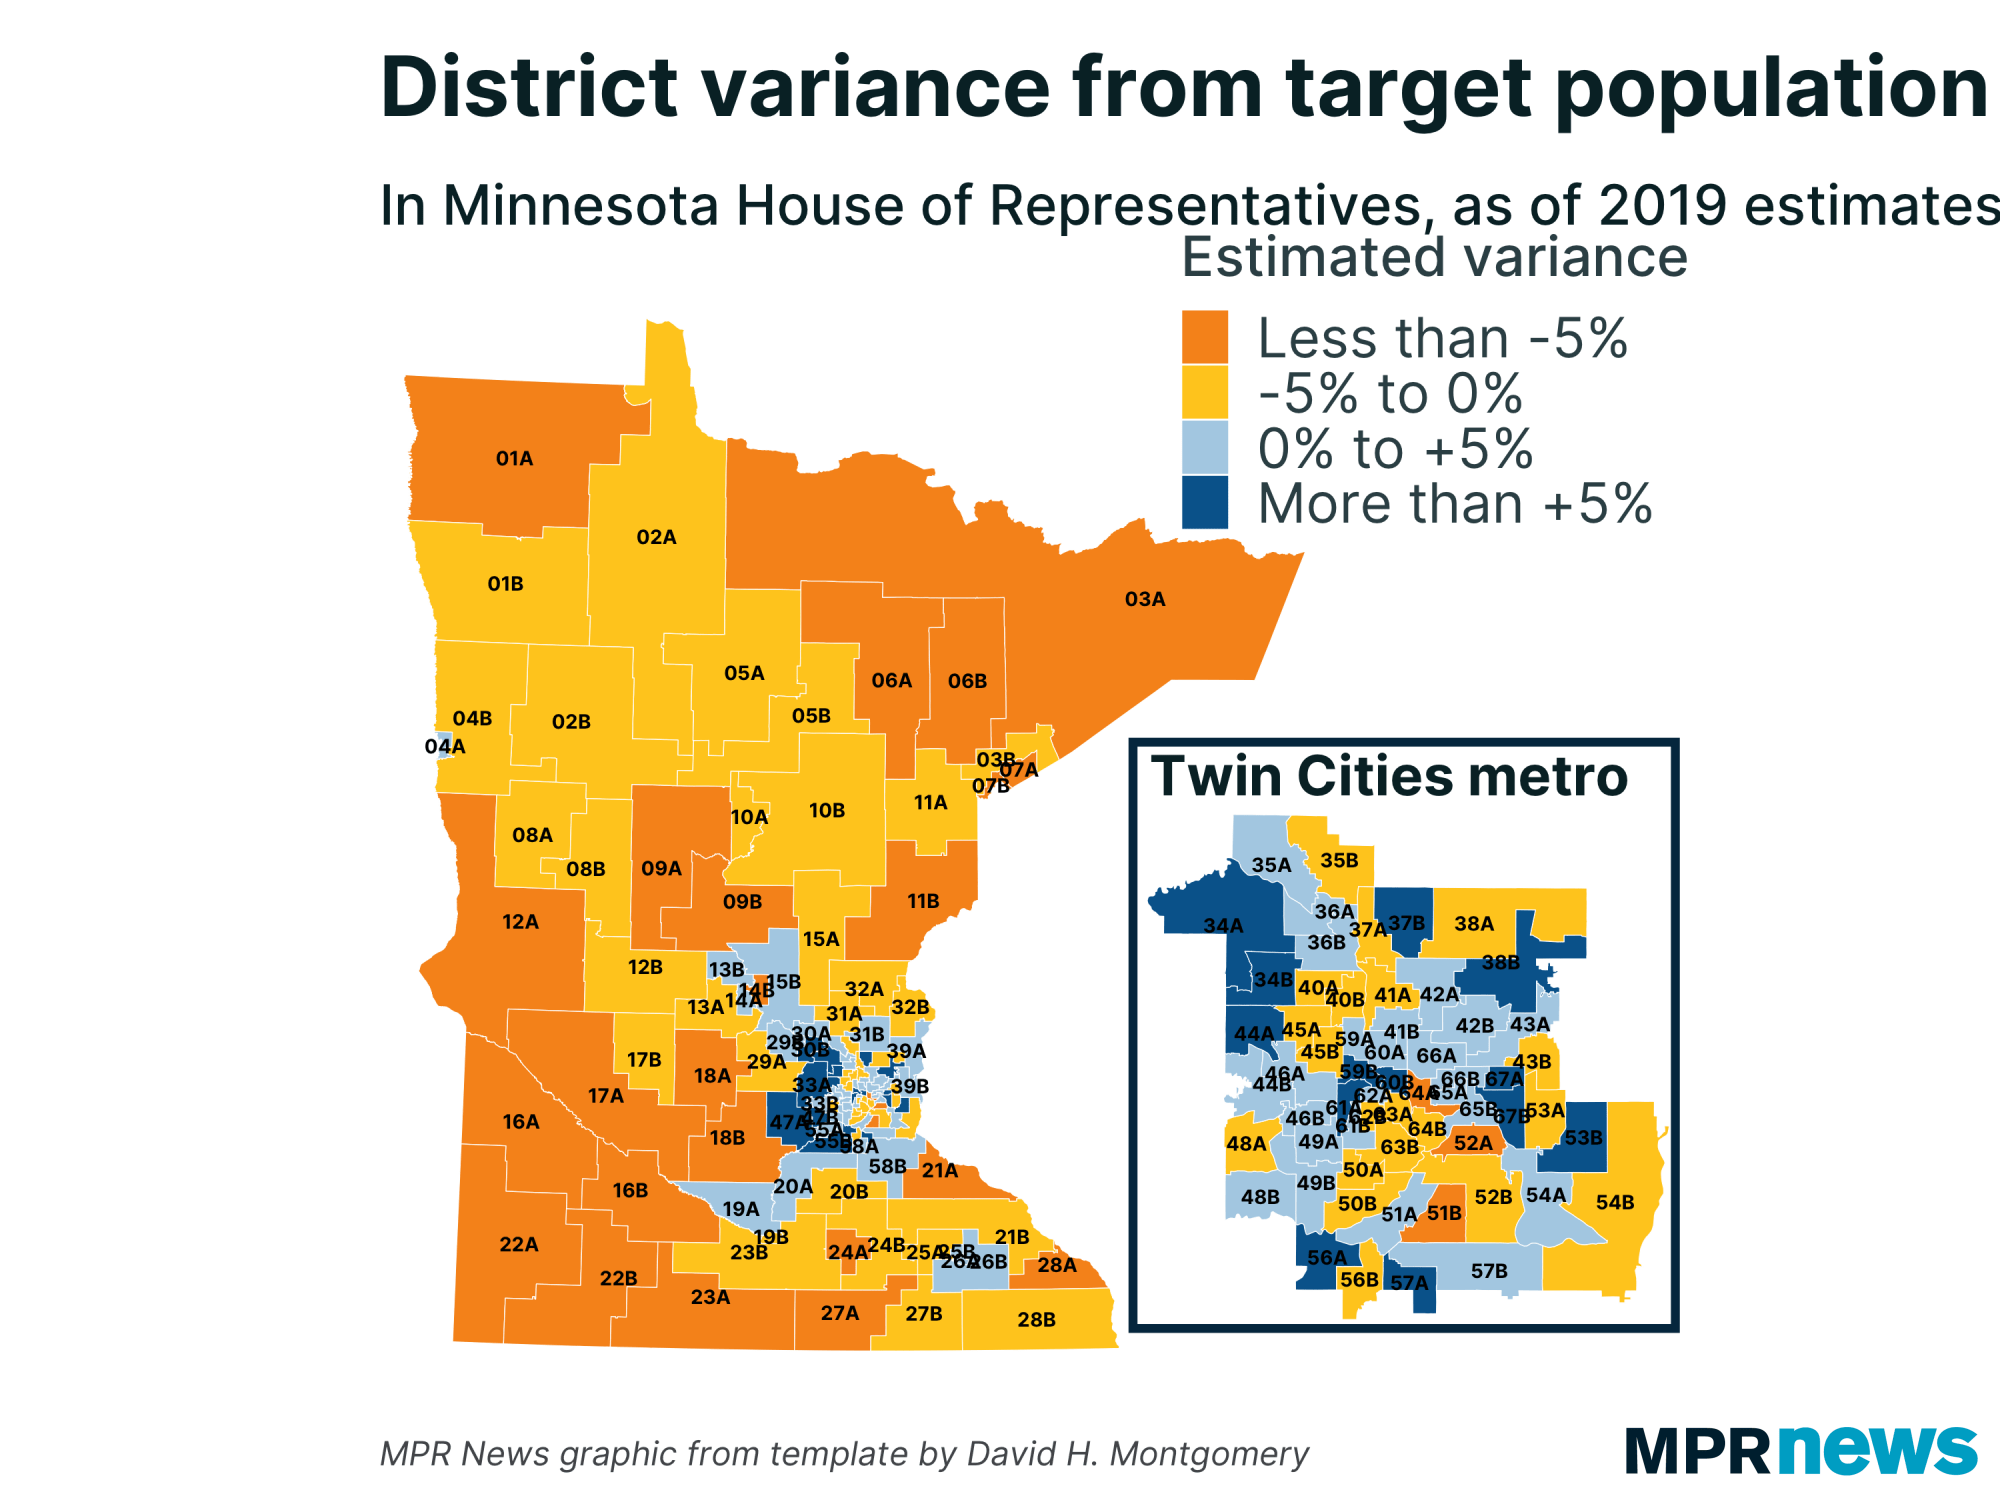 A graphic showing district variance.